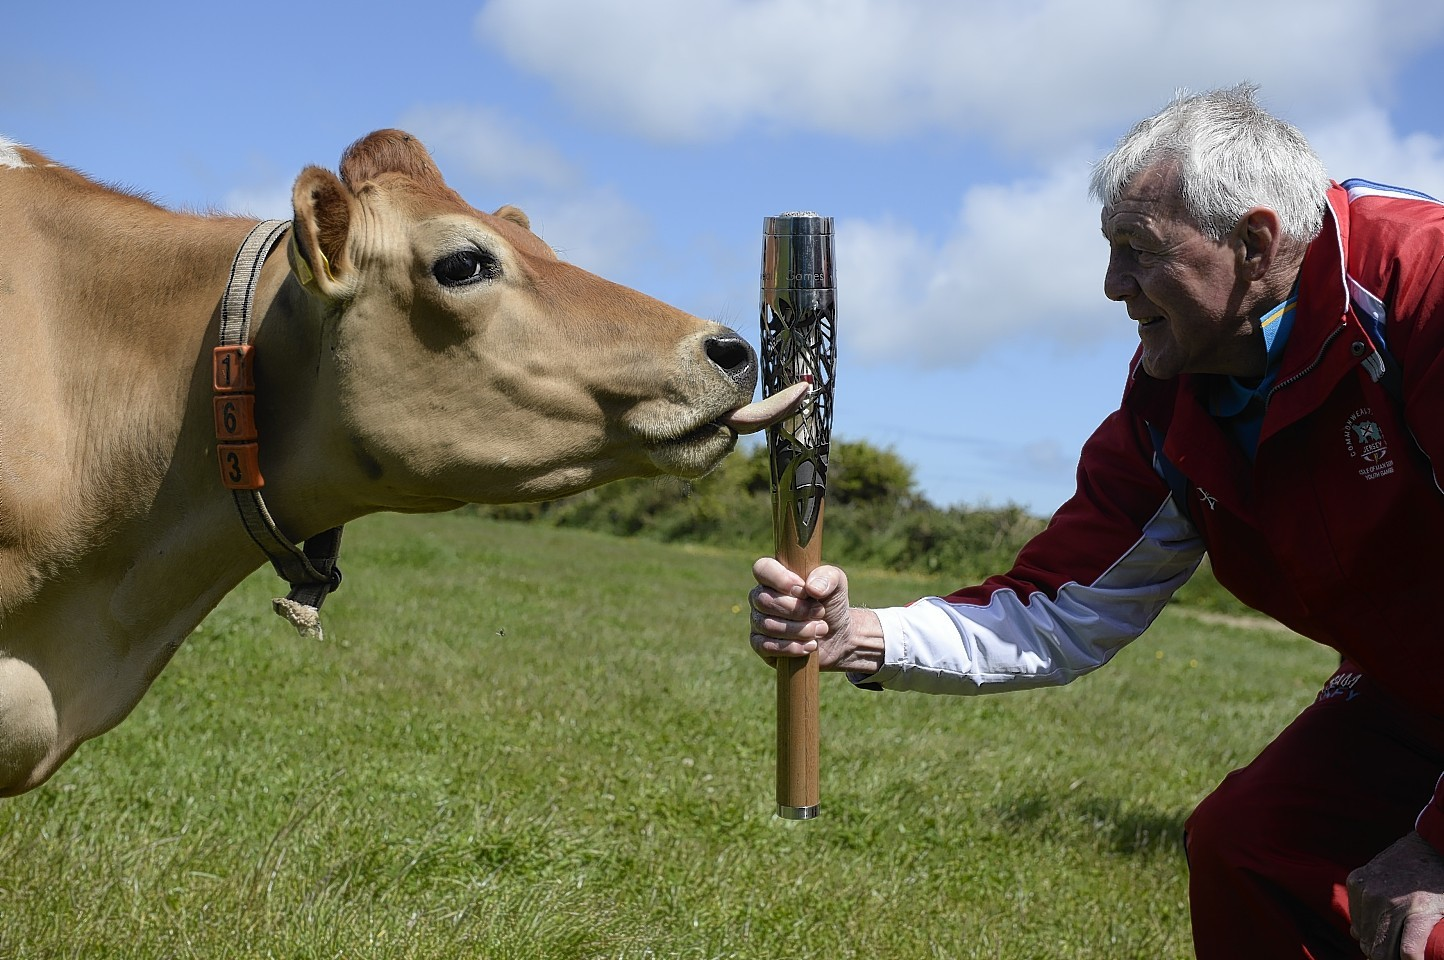 The Moray leg of the Baton Relay will take place on July 2nd